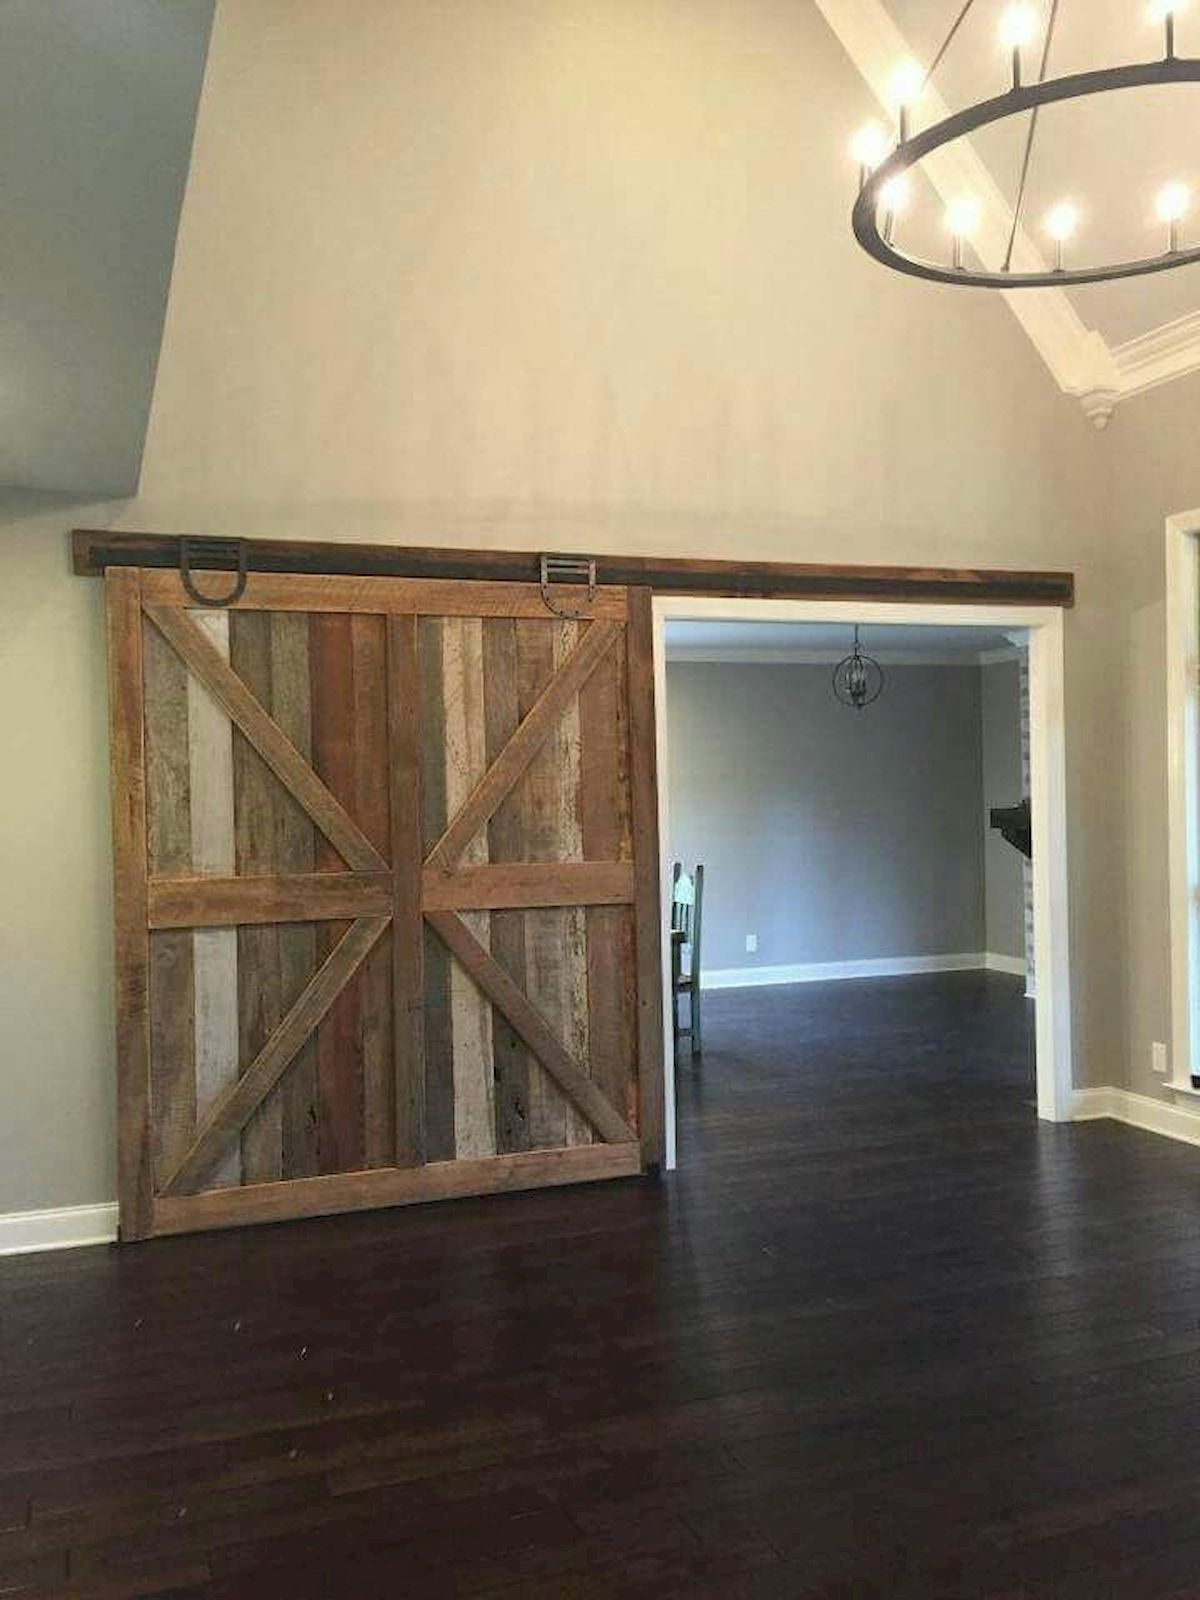 70 Rustic Home Decor Ideas for Doors and Windows (26)